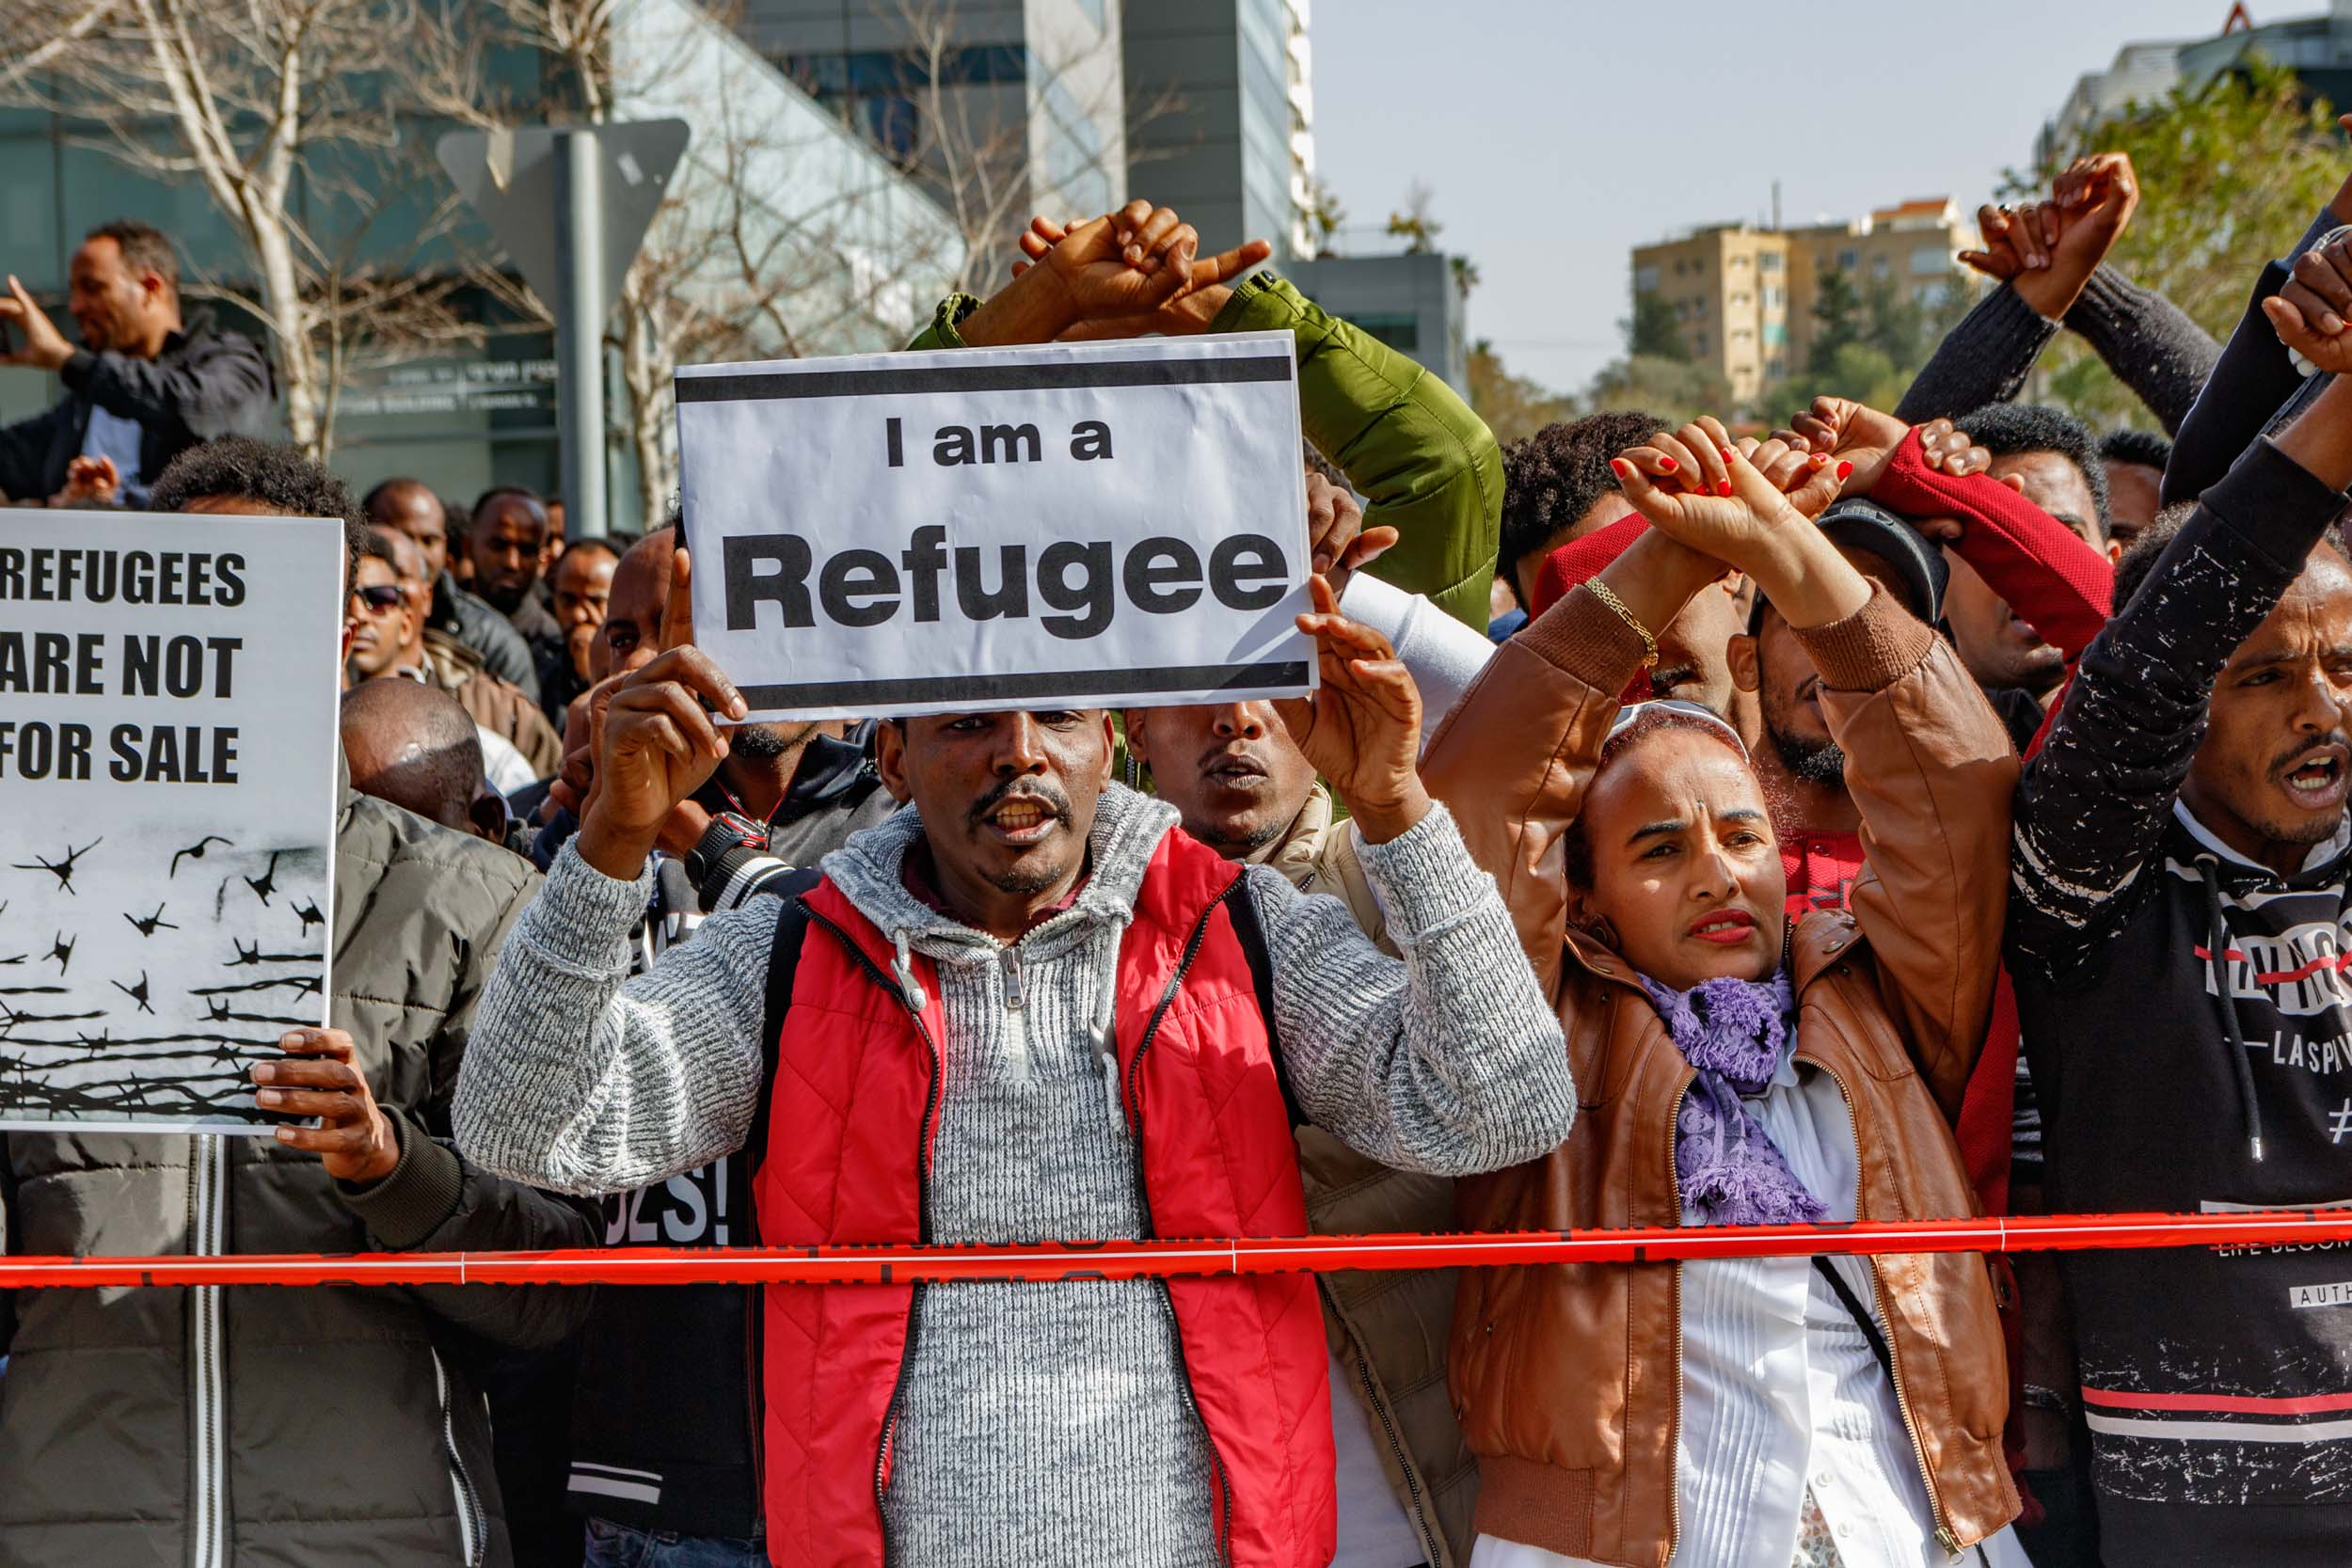 Israel, January 2018 - Illegal immigrants and asylum seekers from Africa protest the decision to expel them back